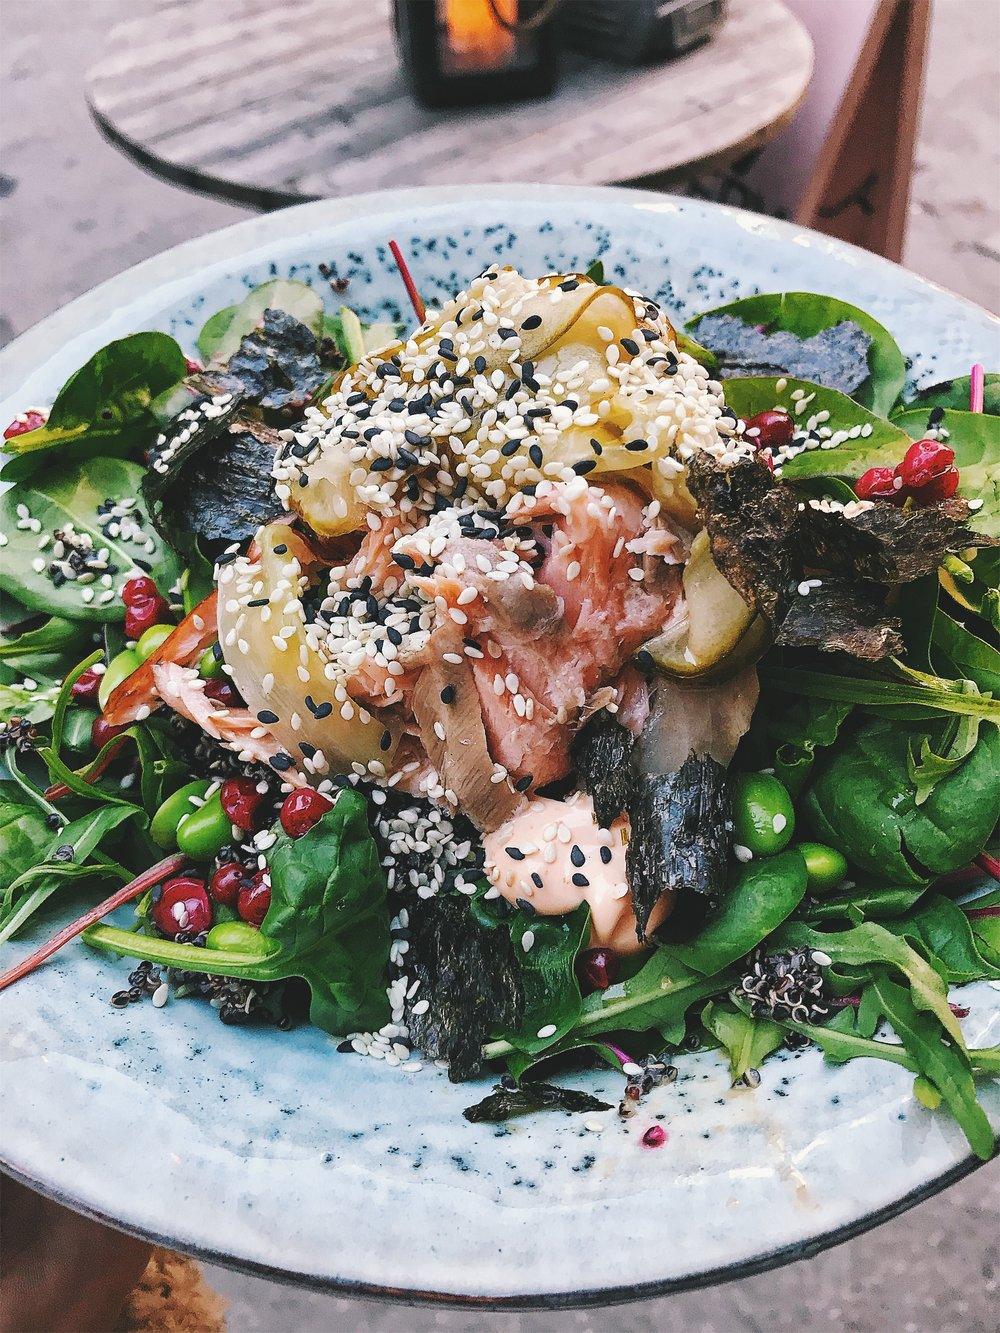 Salad with salmon, edamame, nori and lingonberries from Snickerbacken7